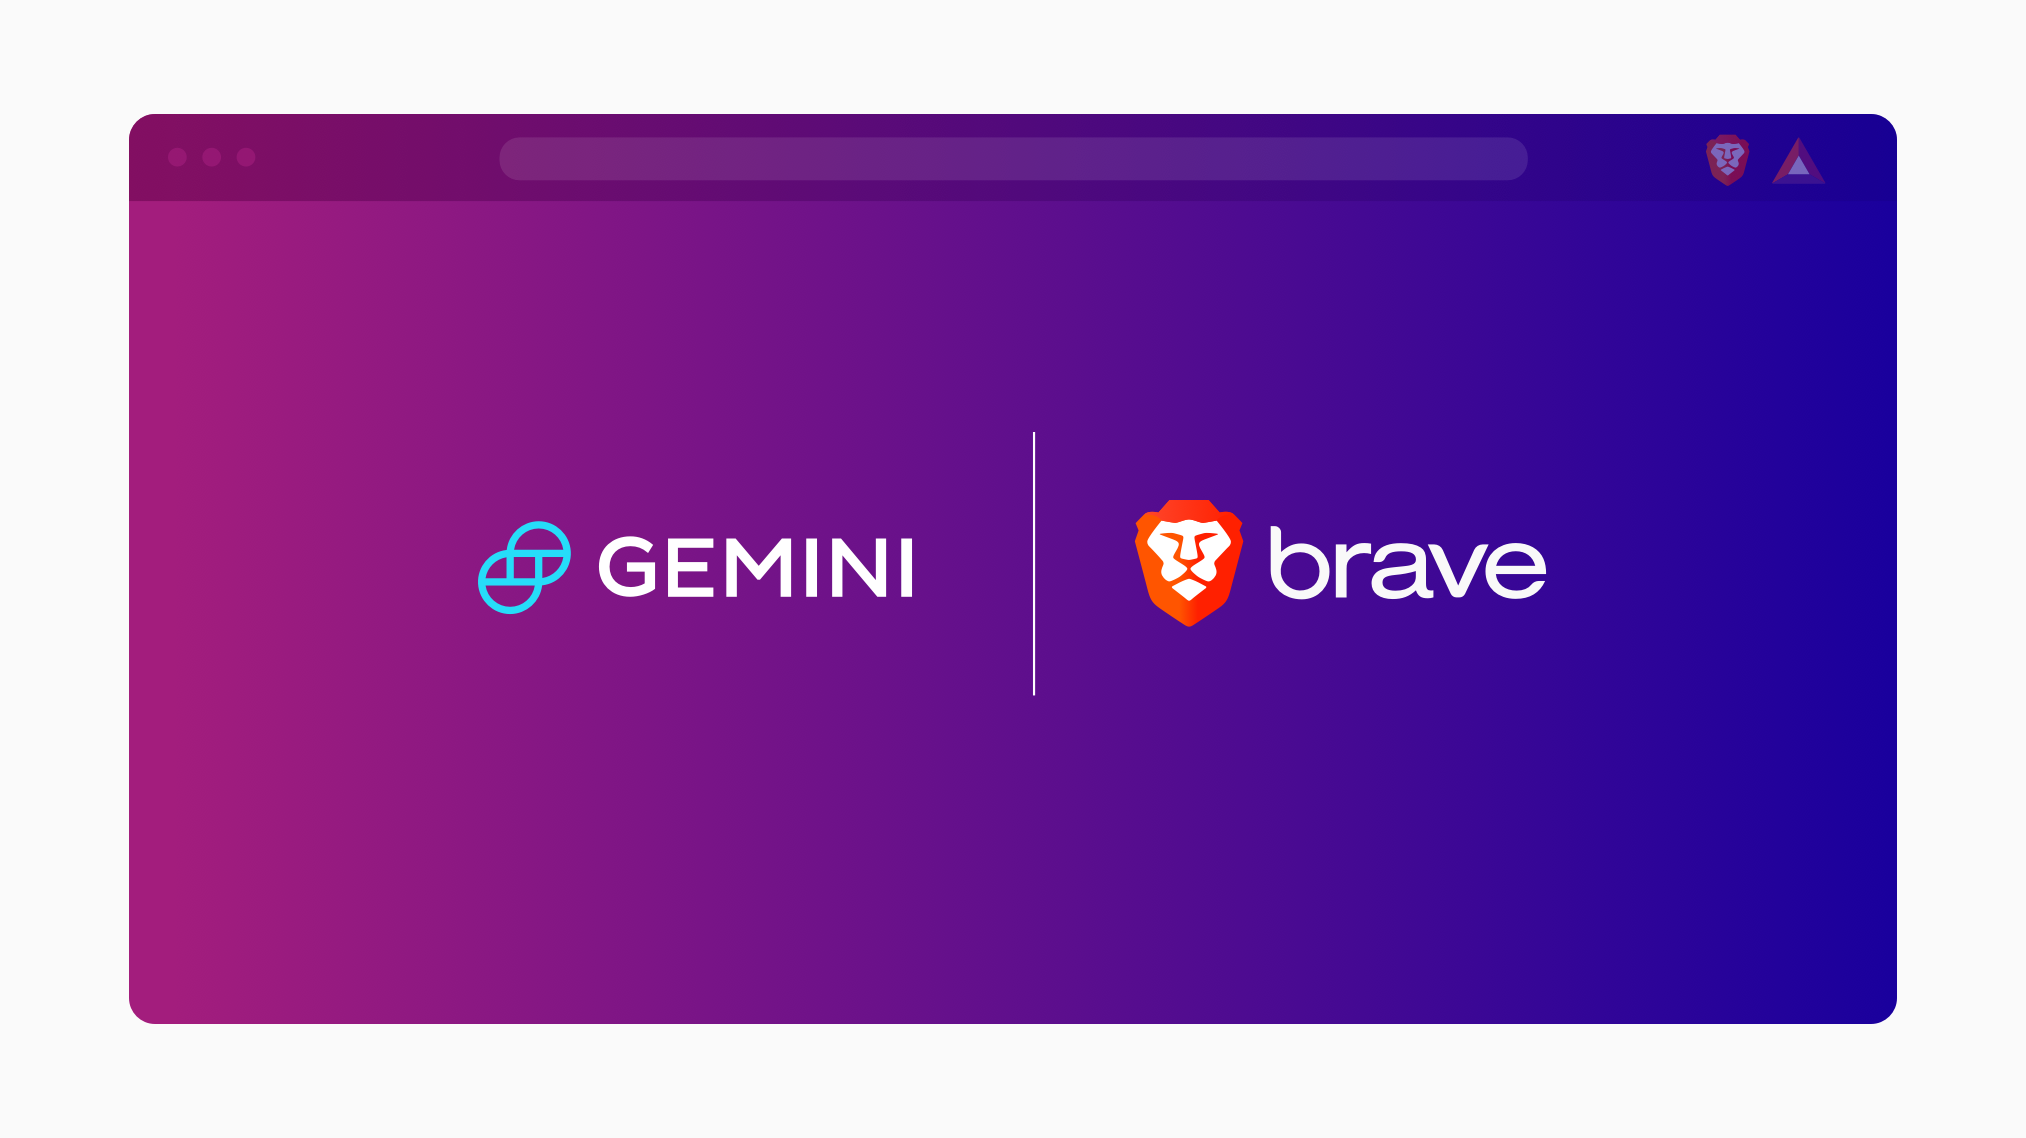 Gemini Trading Widget Now Available to Brave Desktop Users